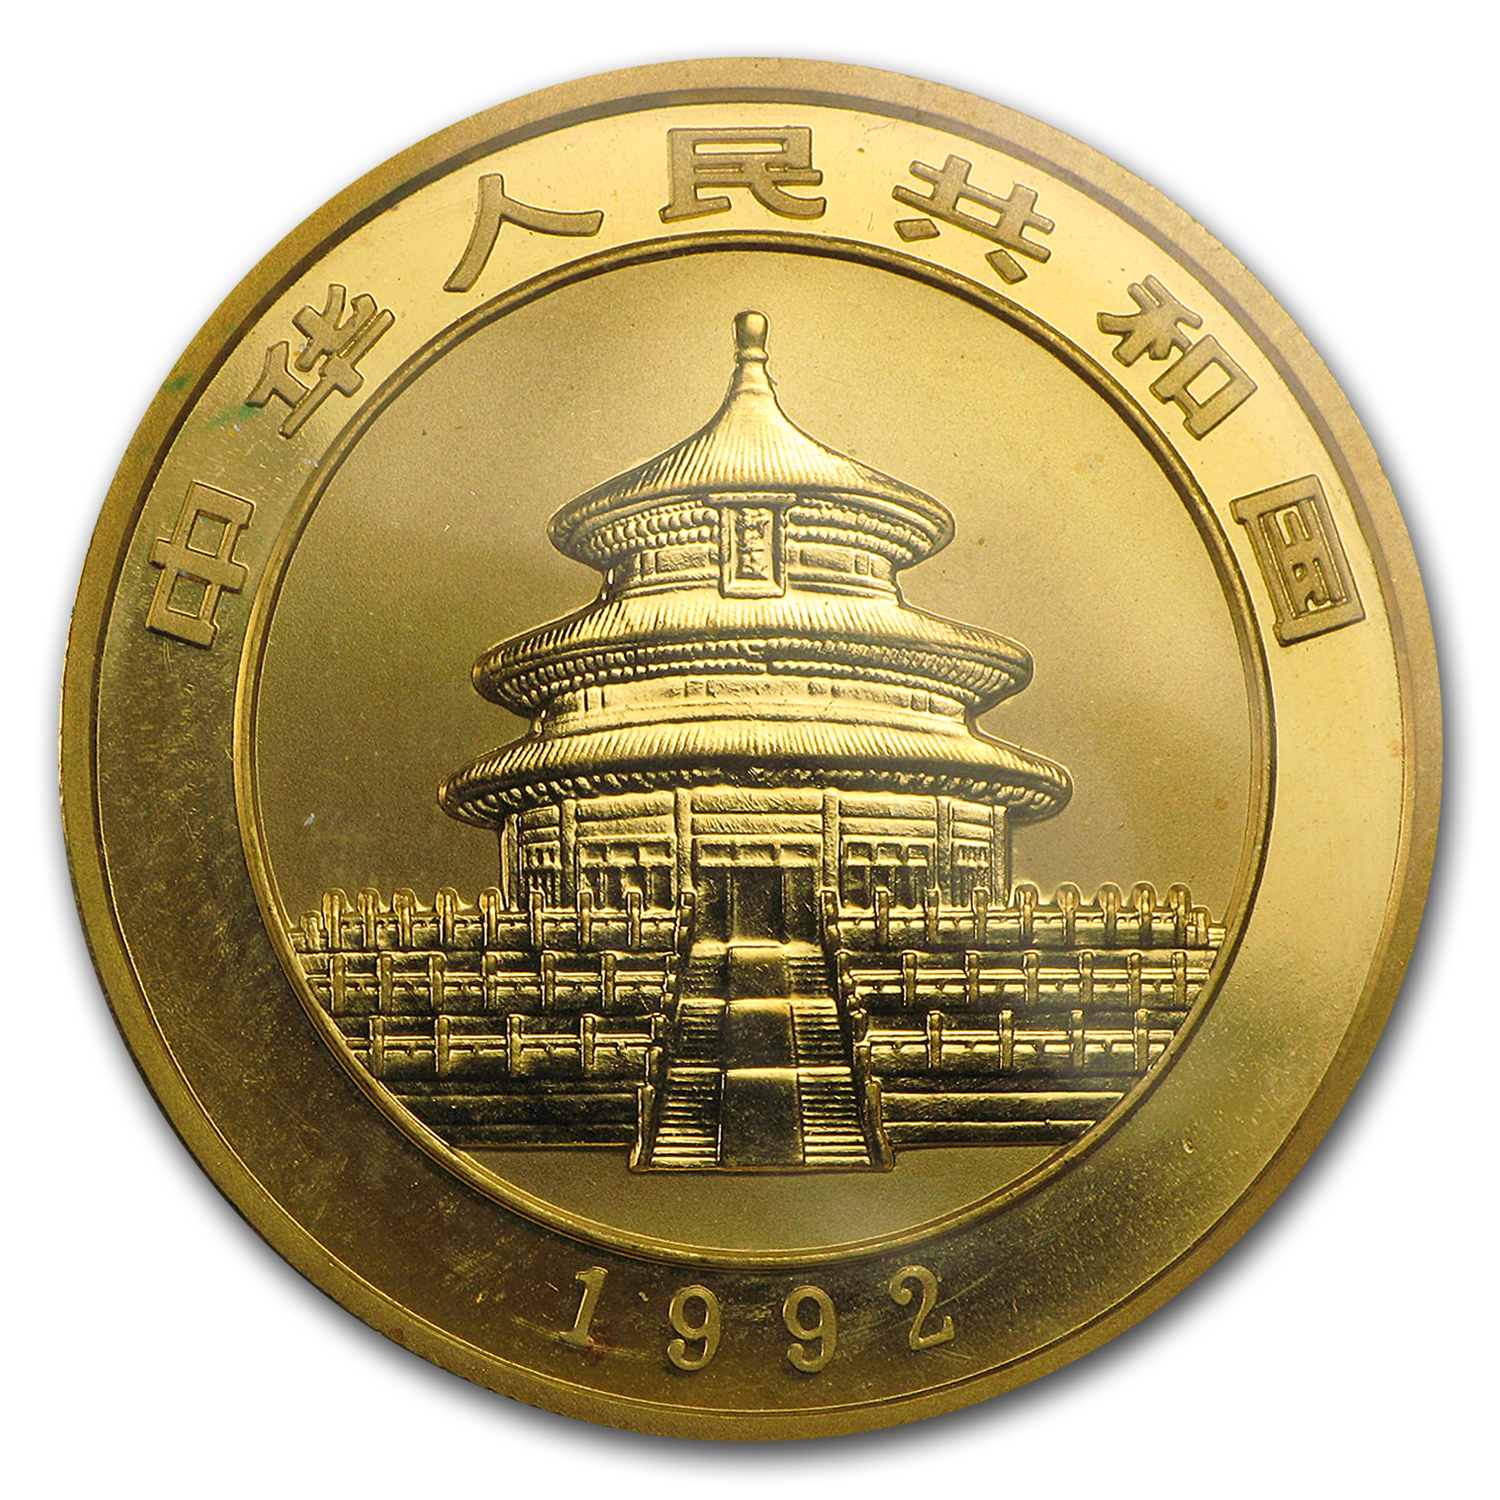 1992 China 1 oz Gold Panda Large Date BU (Sealed)